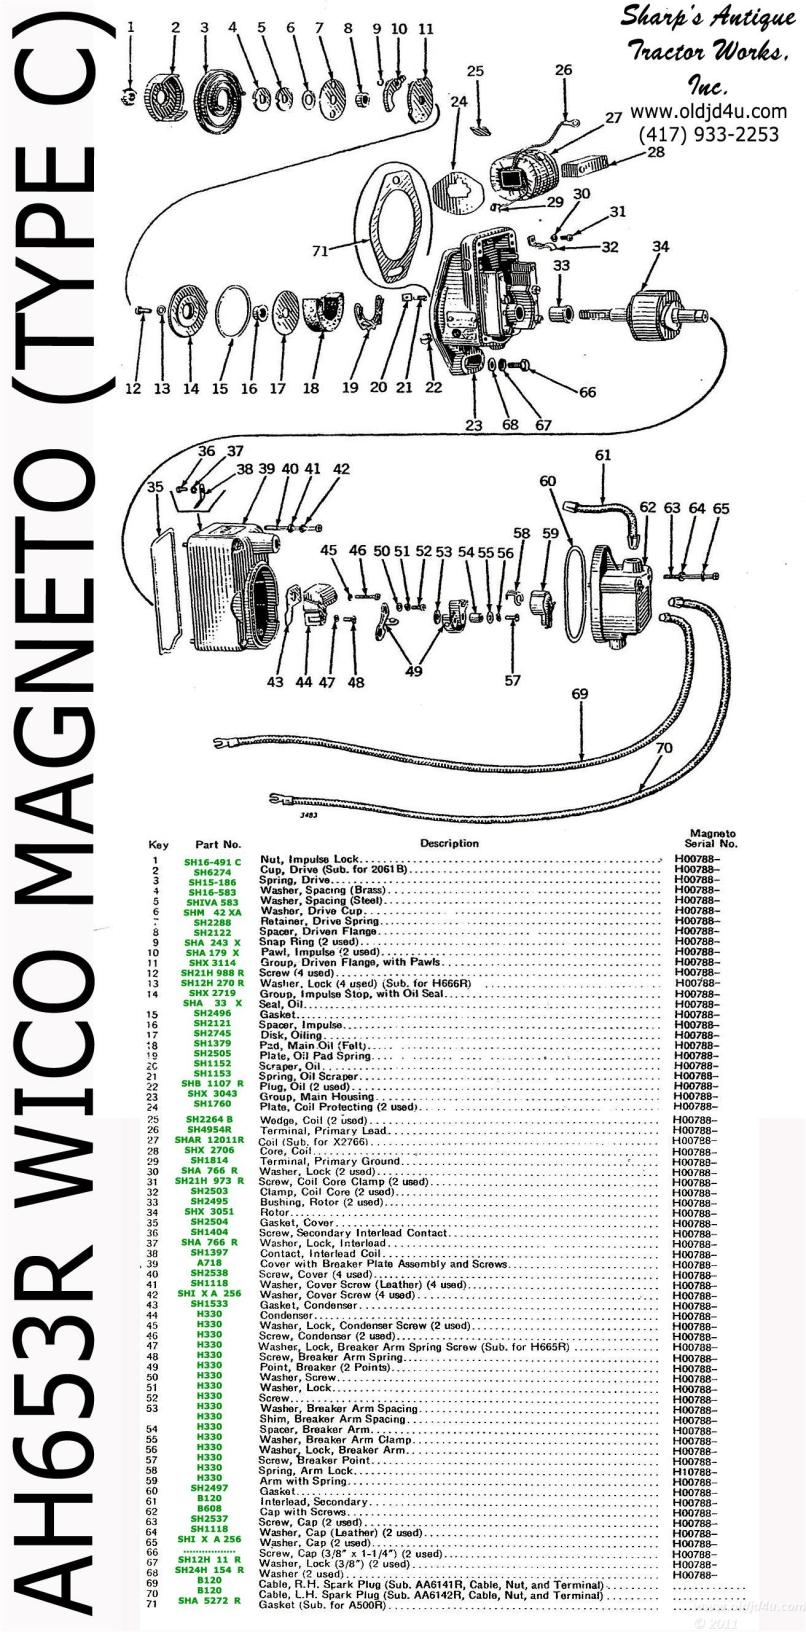 Motorcycle Magneto Wiring Diagram | Reviewmotors.co on